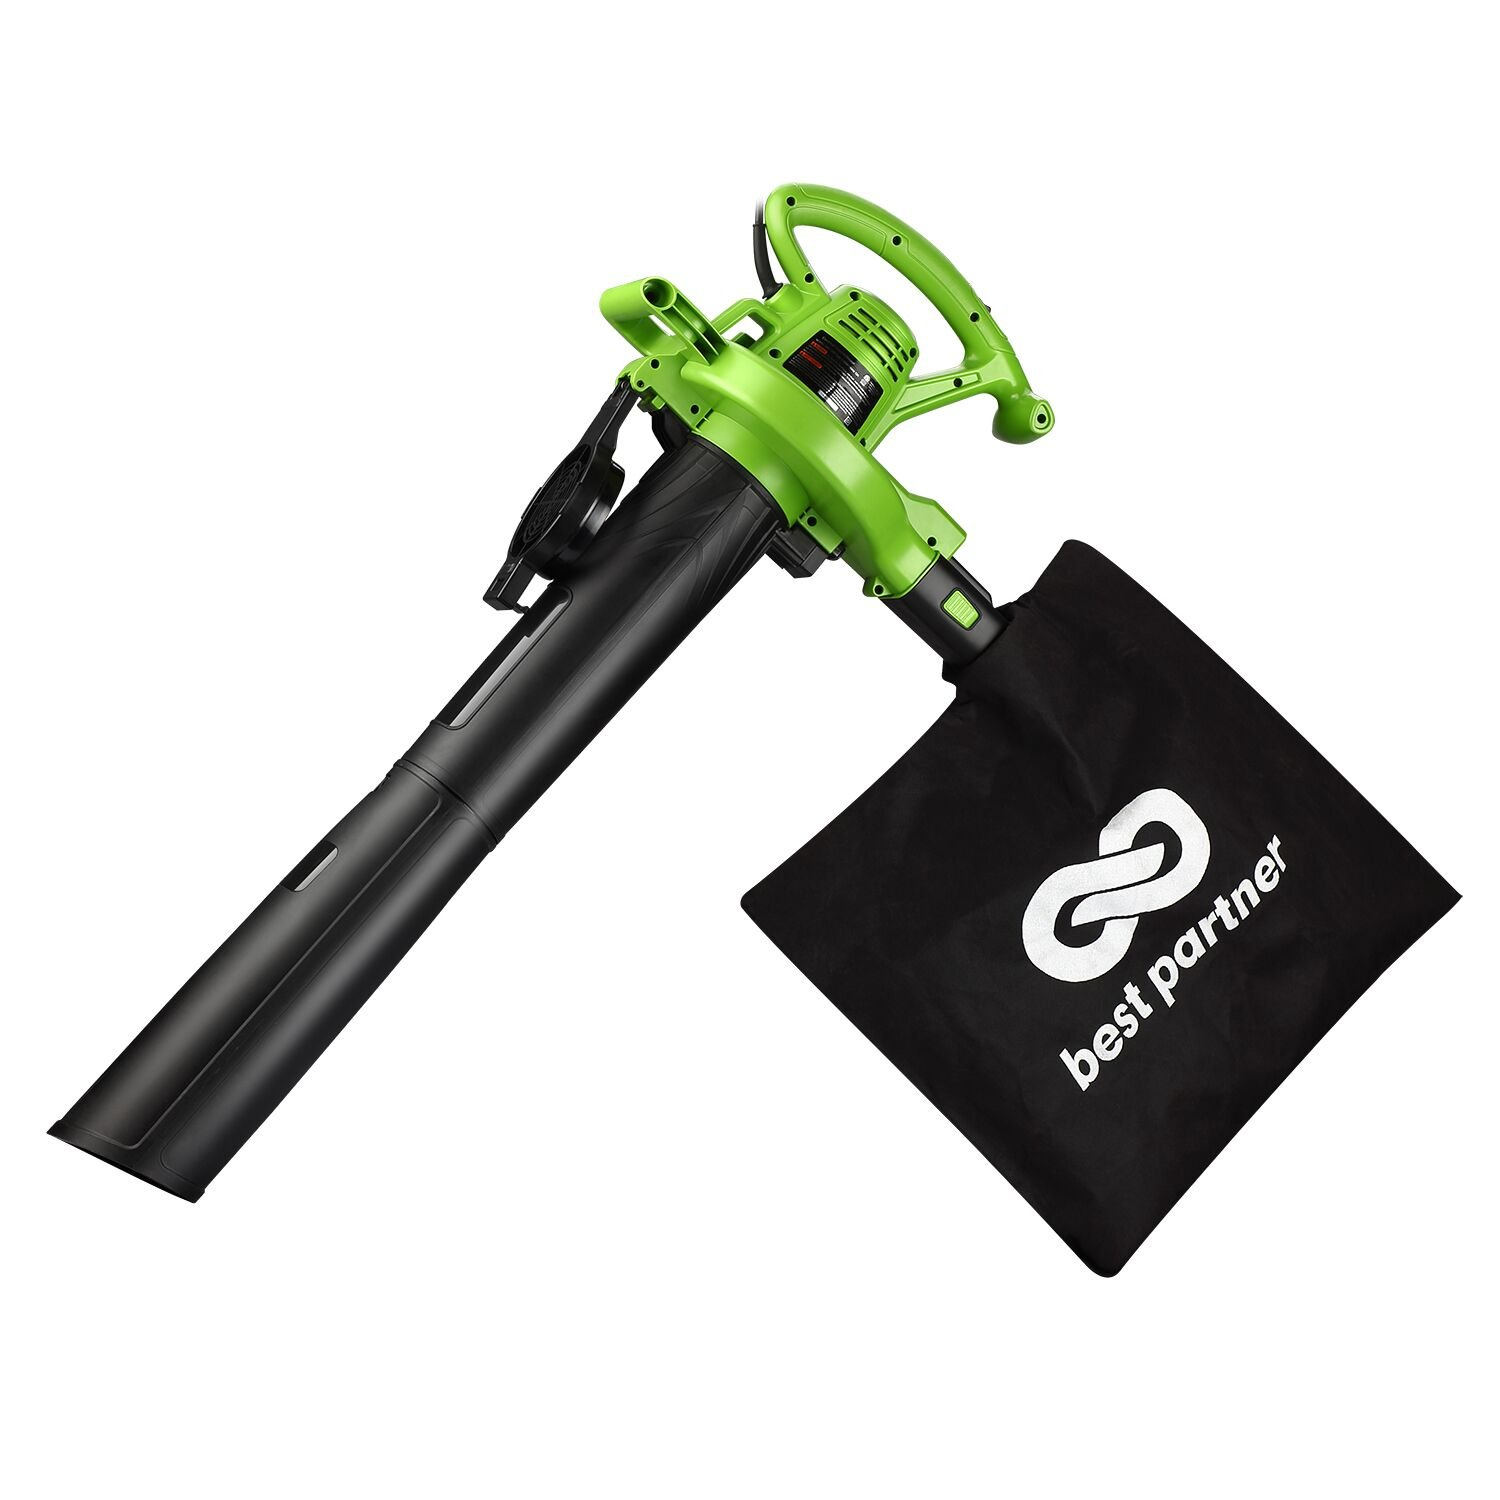 Best Partner Leaf Blower Vacuum/Mulcher with 2 Speed Control, 200 MPH Air Speed 12 AMP Motor and Collection Bag Included